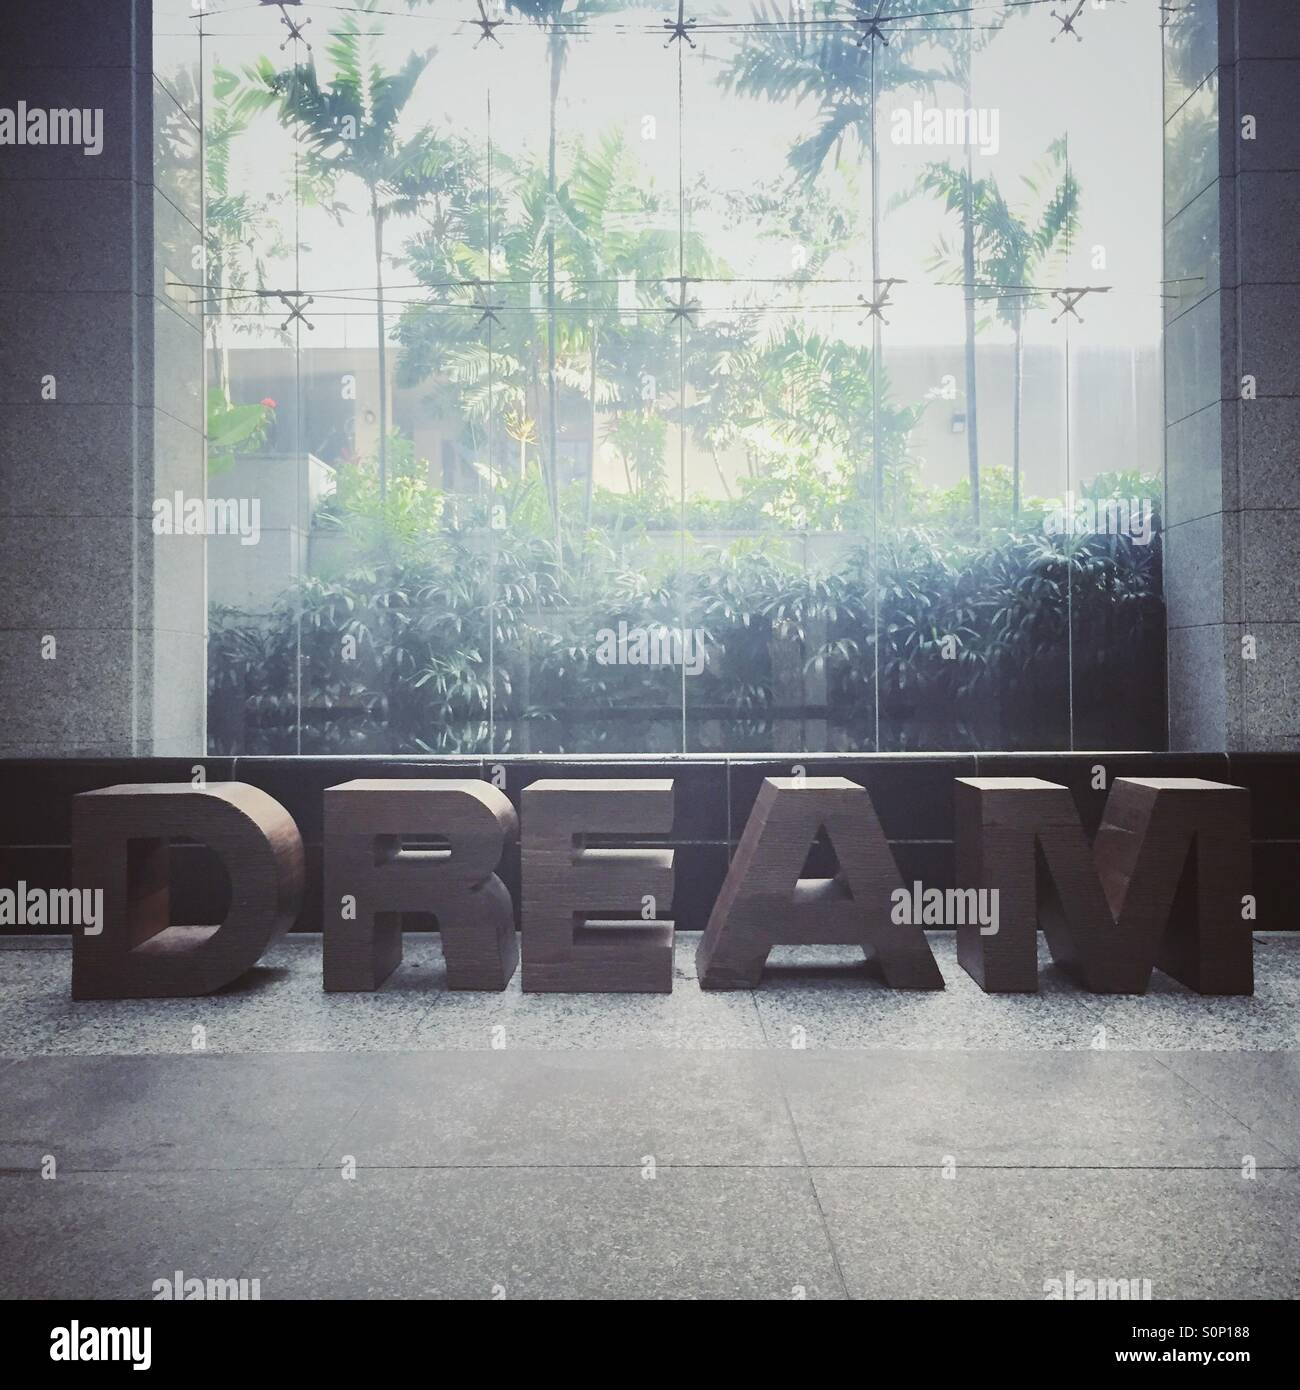 Dream - Stock Image